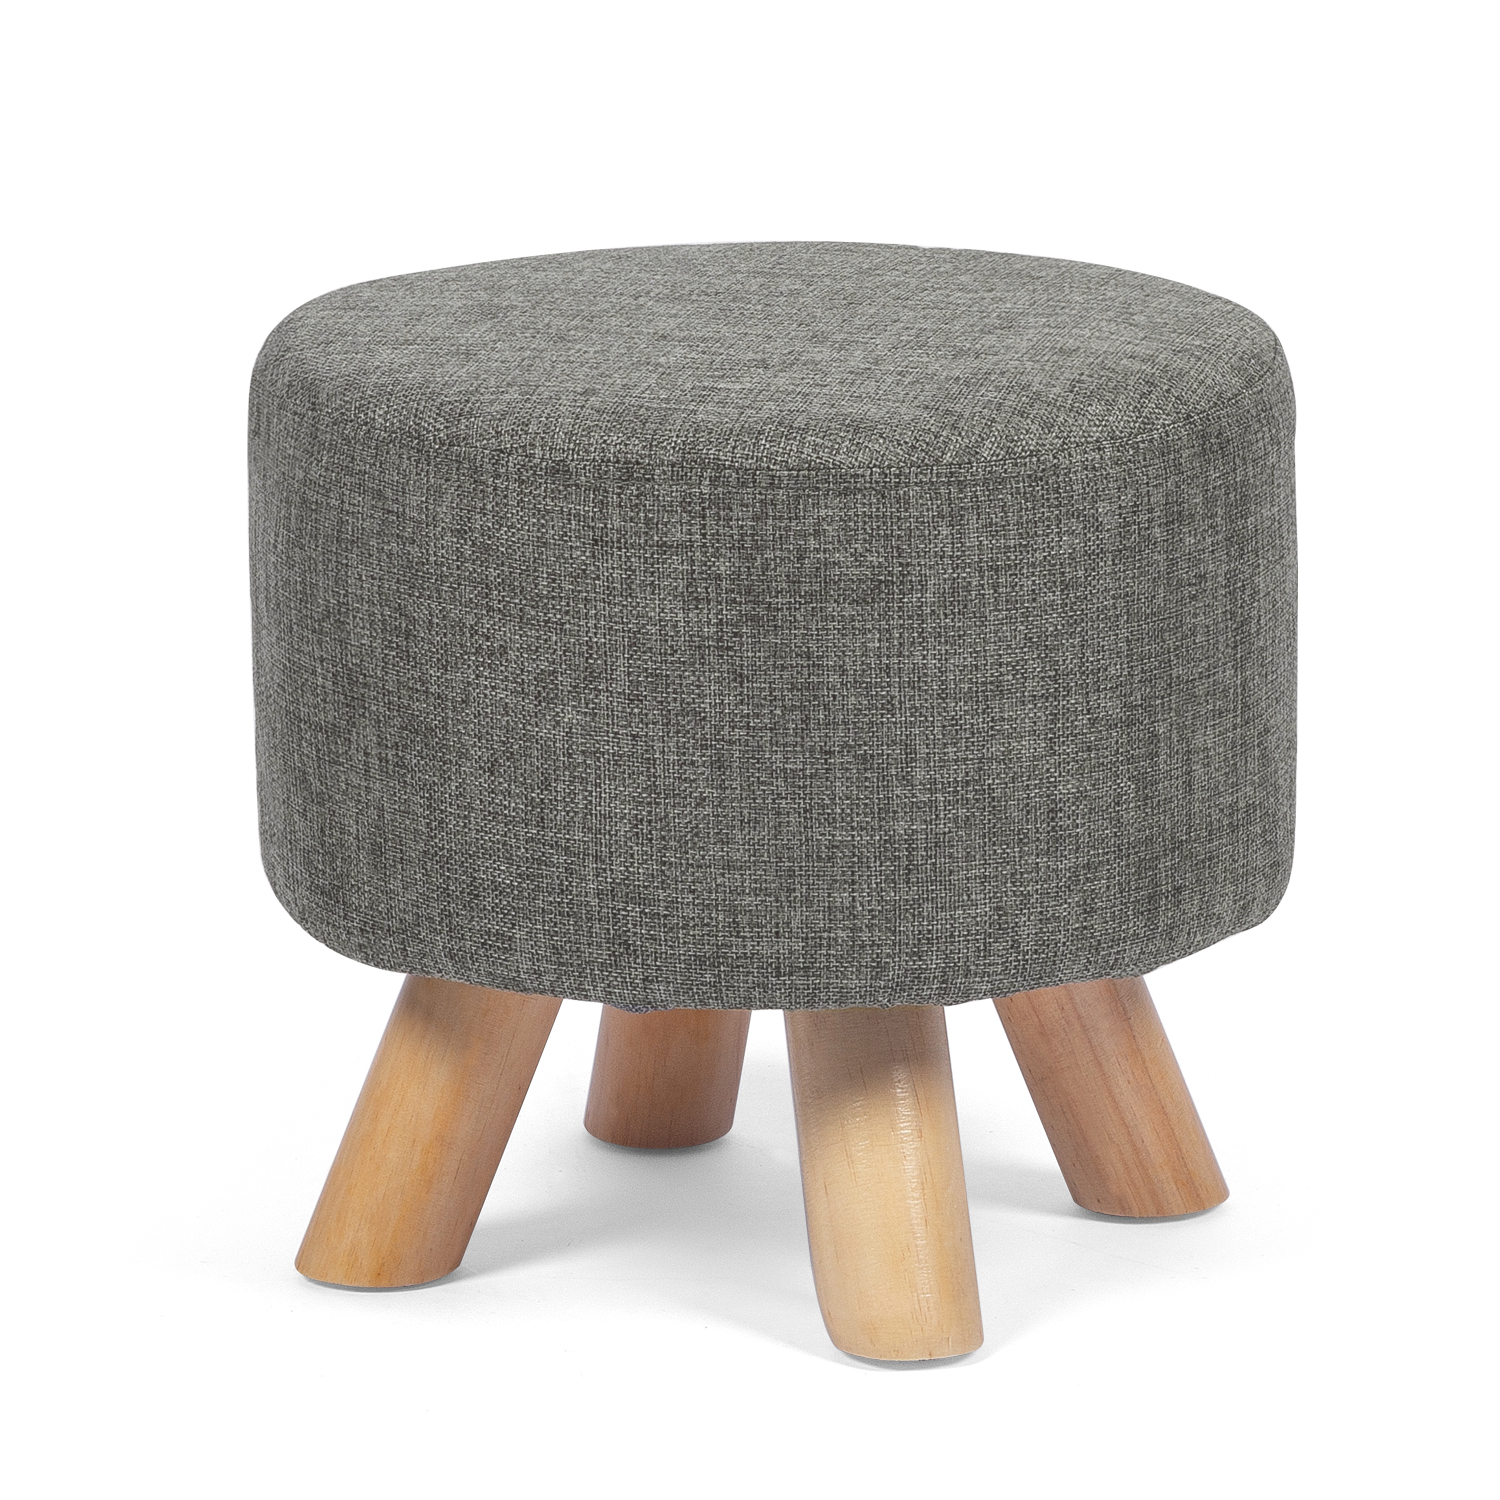 joveco round ottoman foot rest stool small fabric footstool with non skid wood legs grey